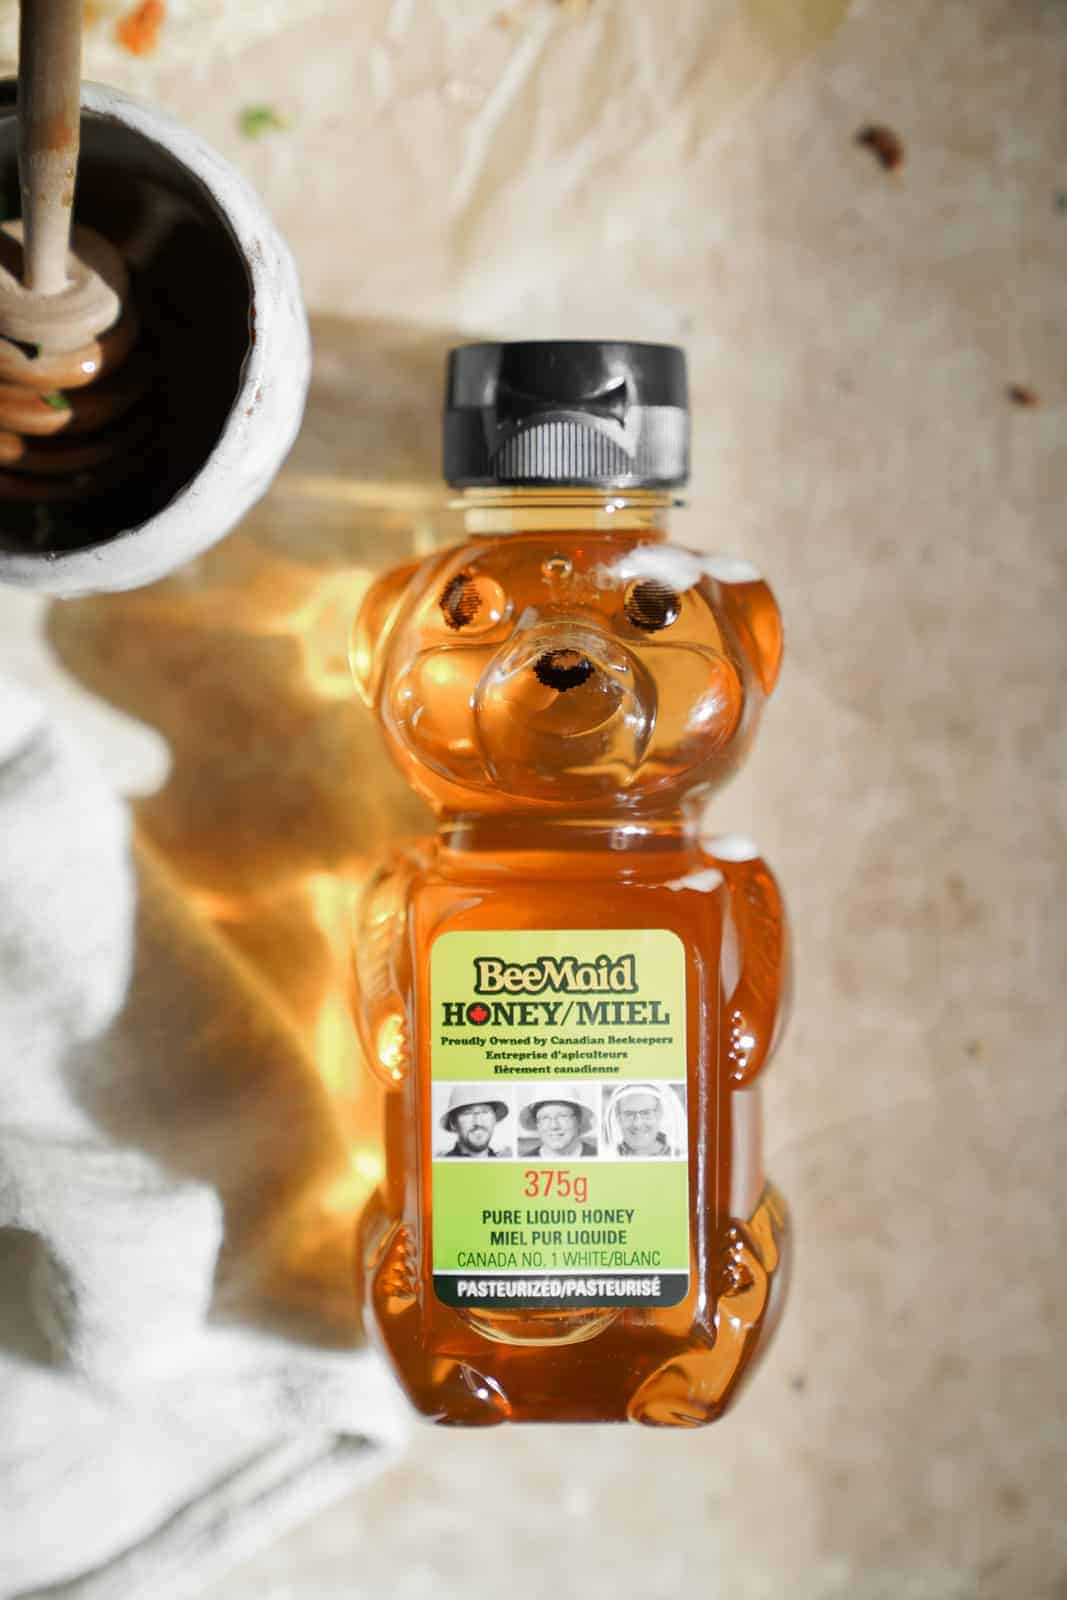 A bottle of honey shaped as a bear for the Vegetarian Breakfast Pizza